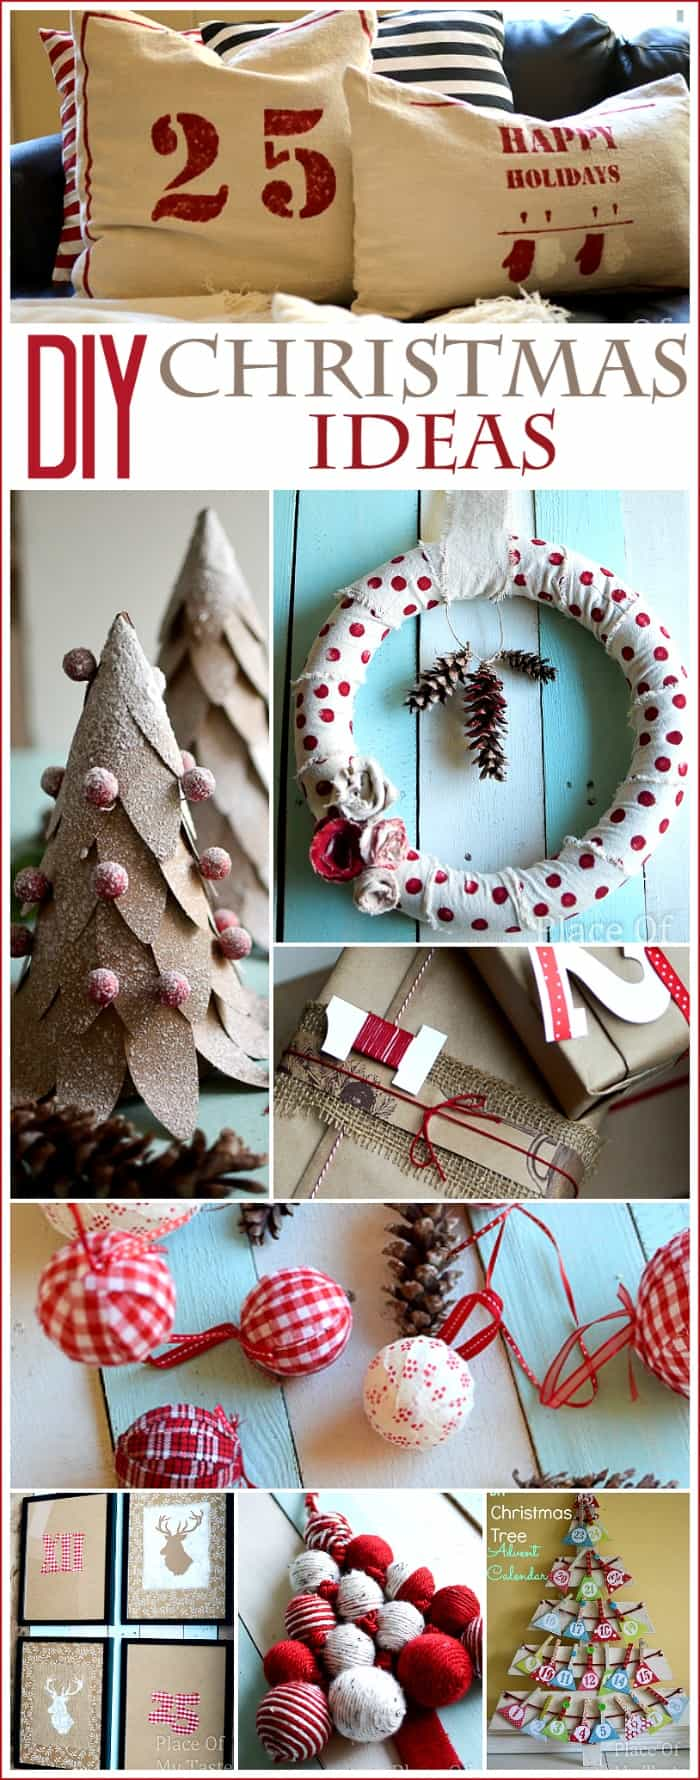 DIY CHRISTMAS IDEAS - Placeofmytaste.com